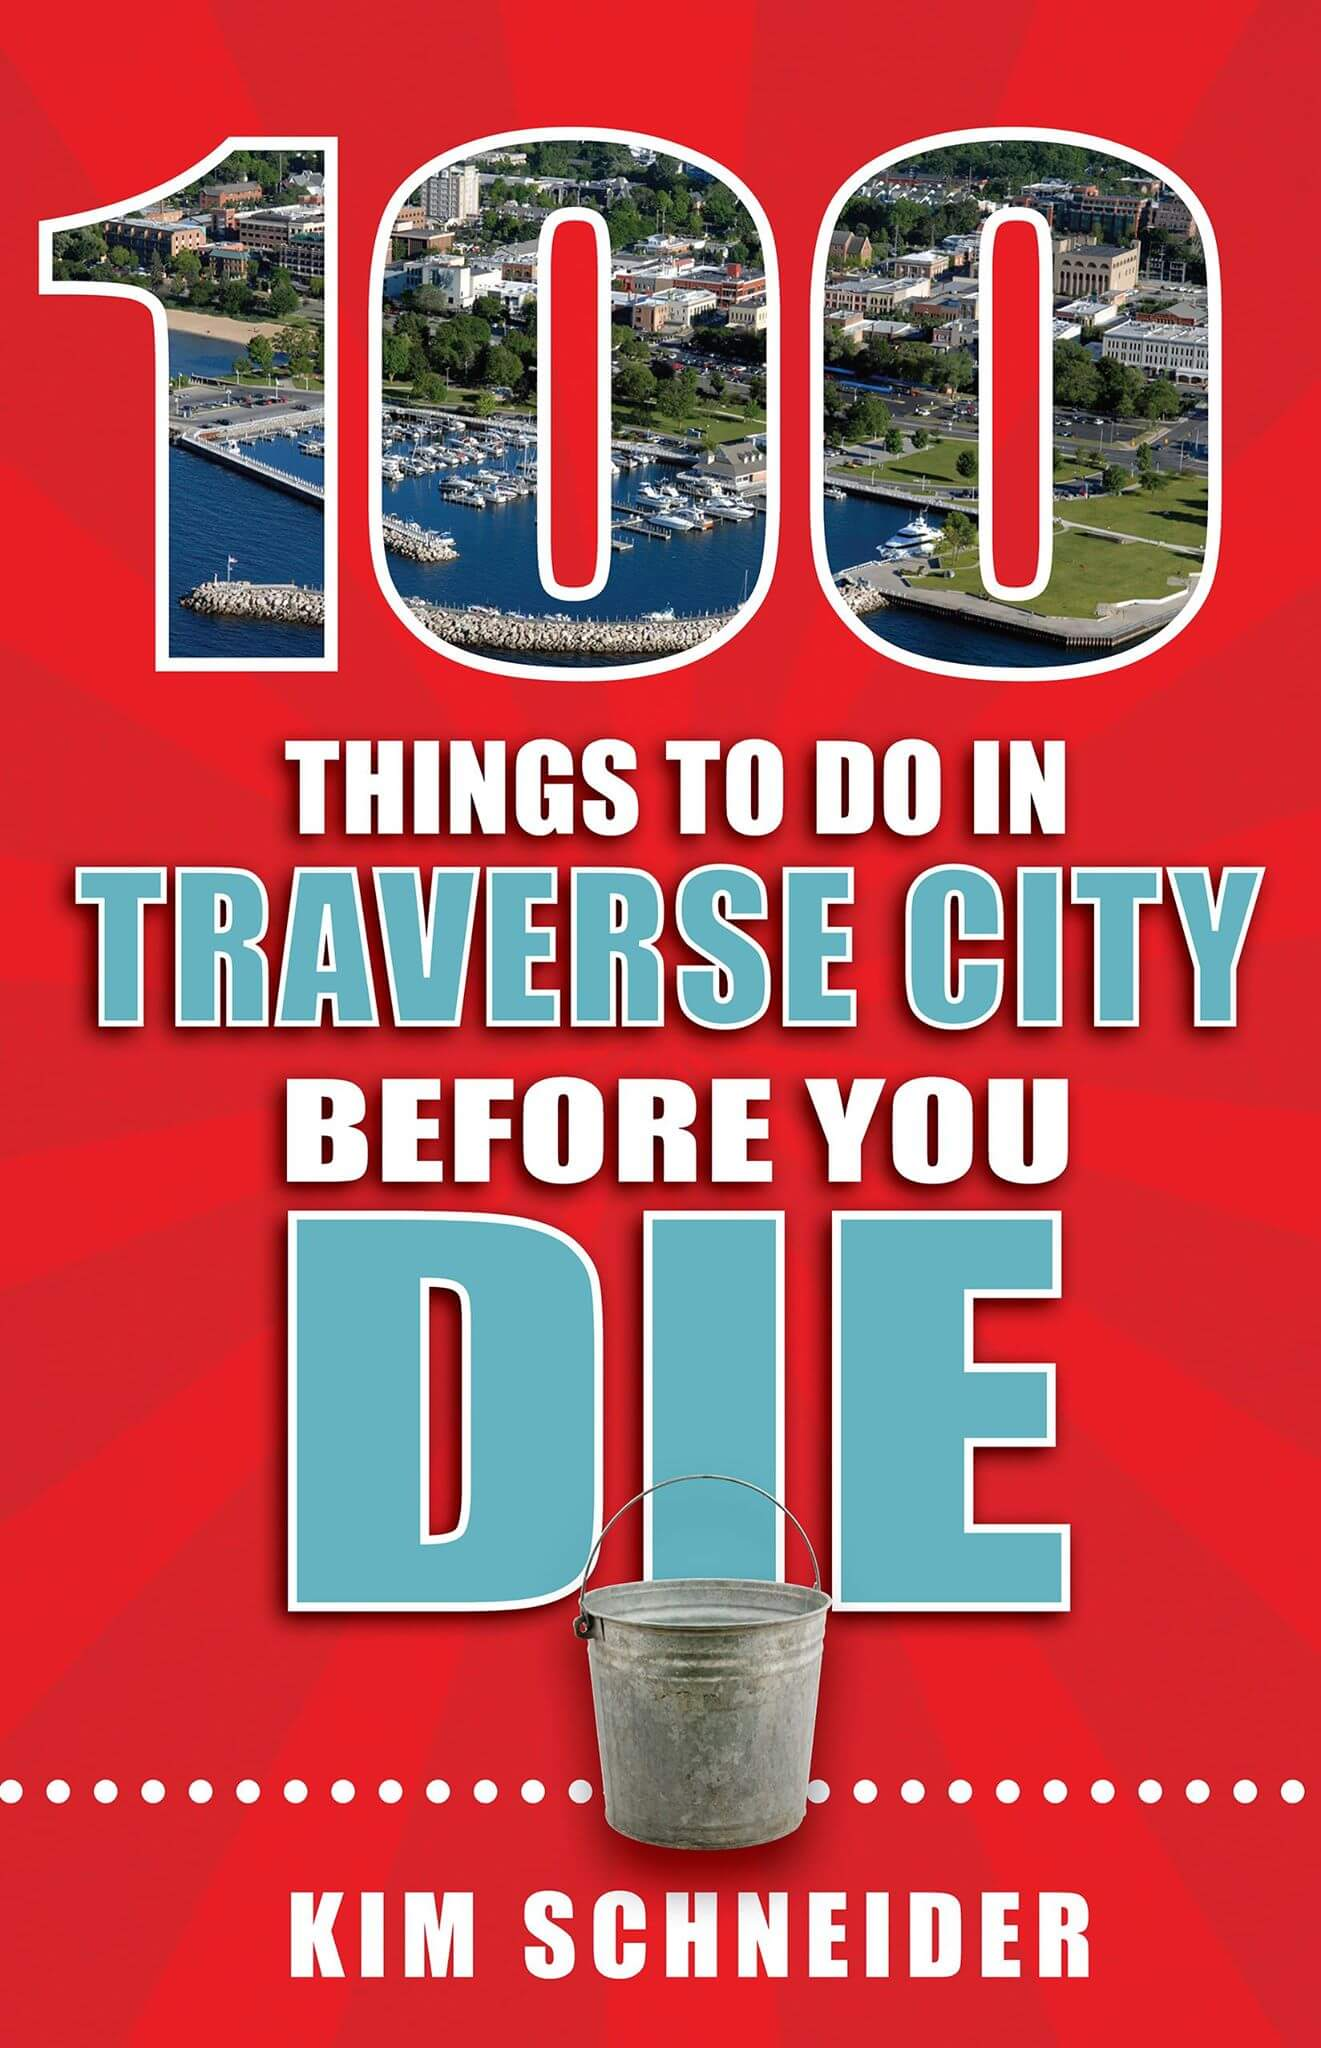 100 Things in Traverse City Book